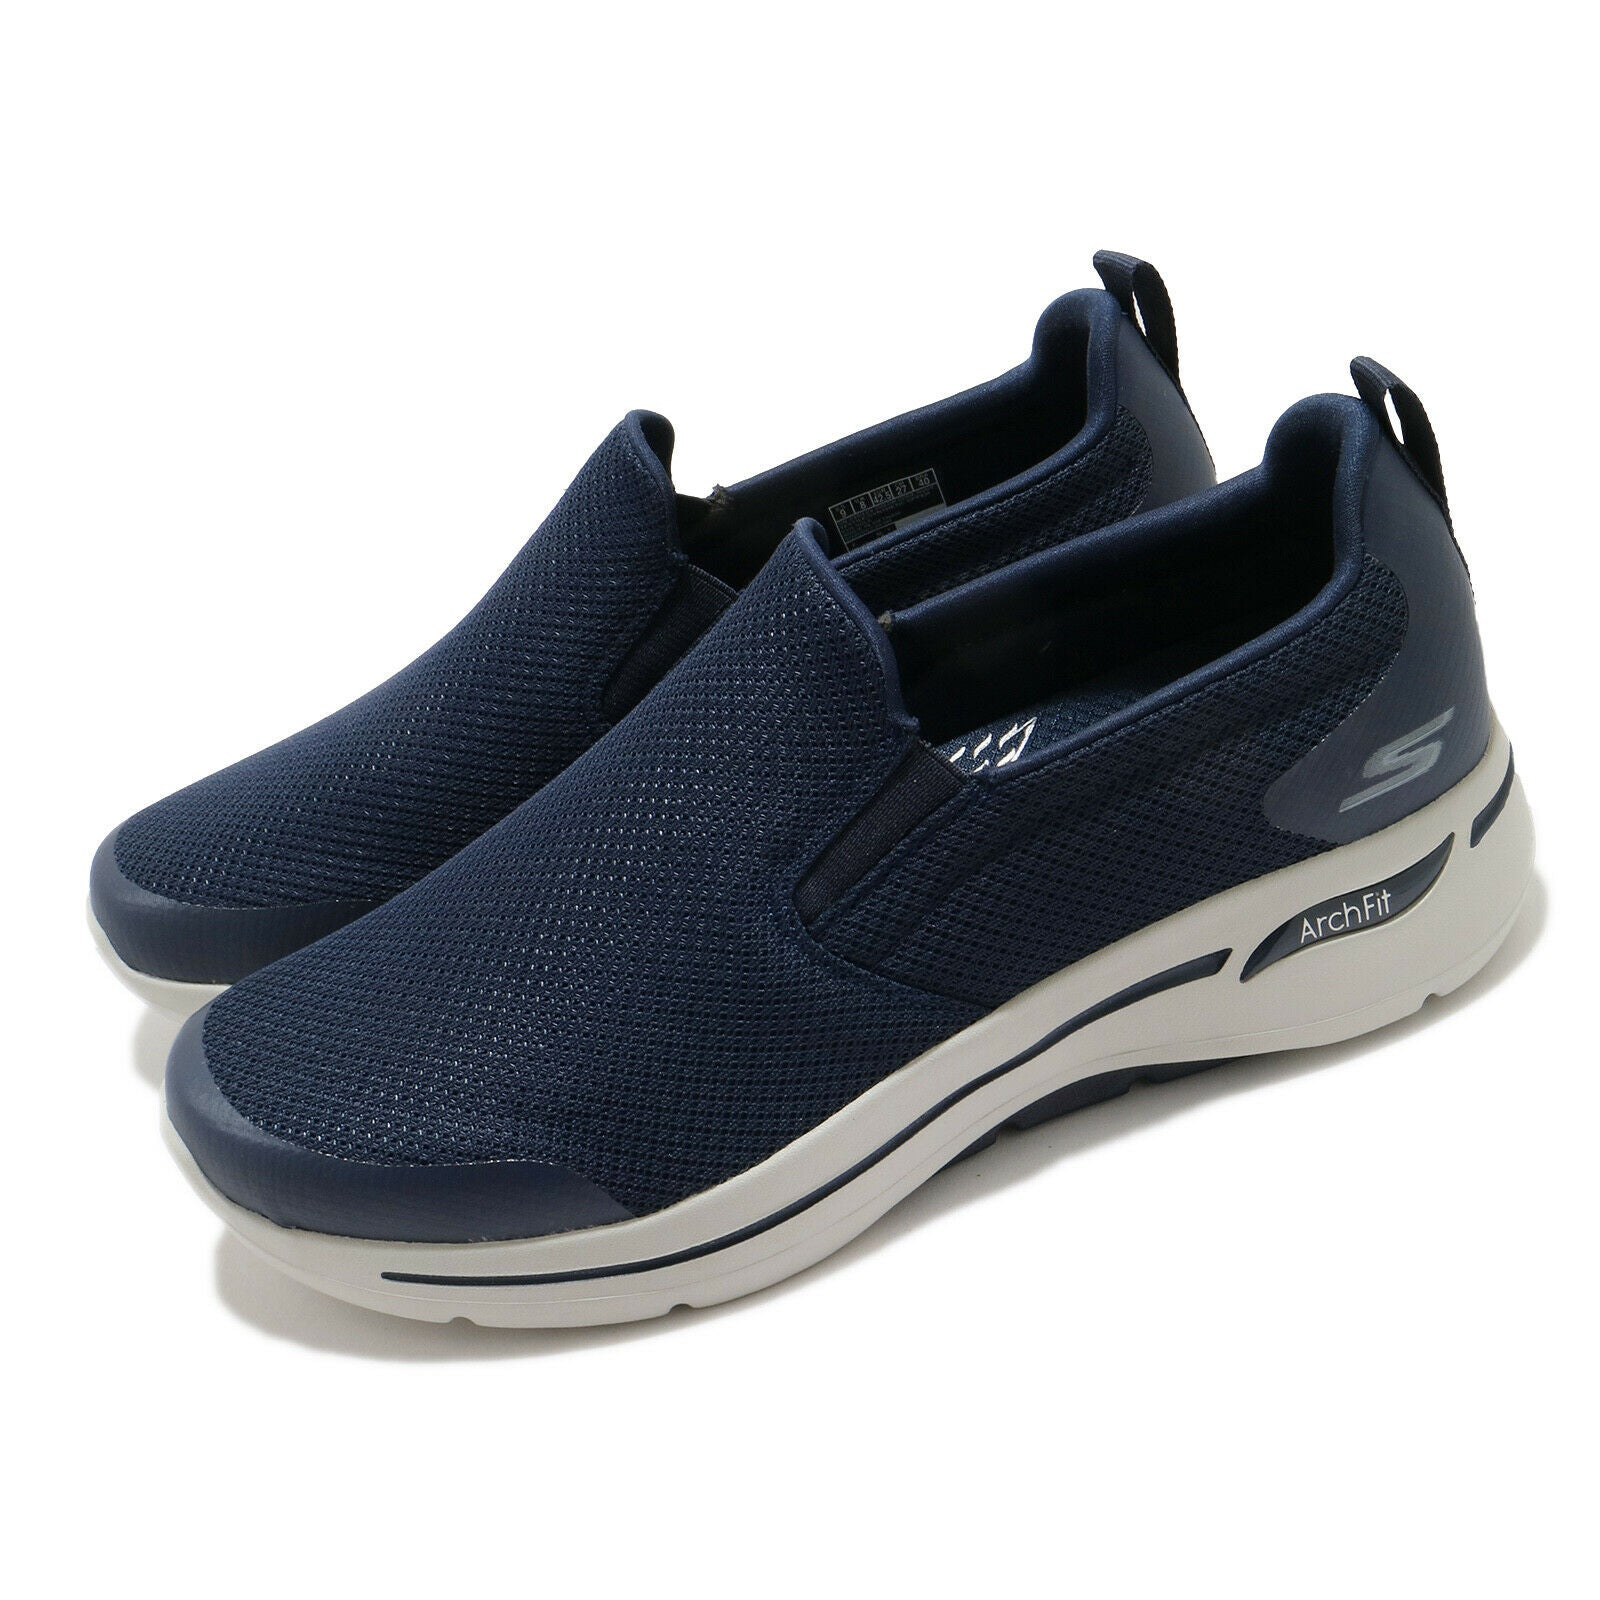 Skechers Go Walk Arch Fit-Topath Navy Grey Men Slip On Shoes Loafers 216121-NVGY